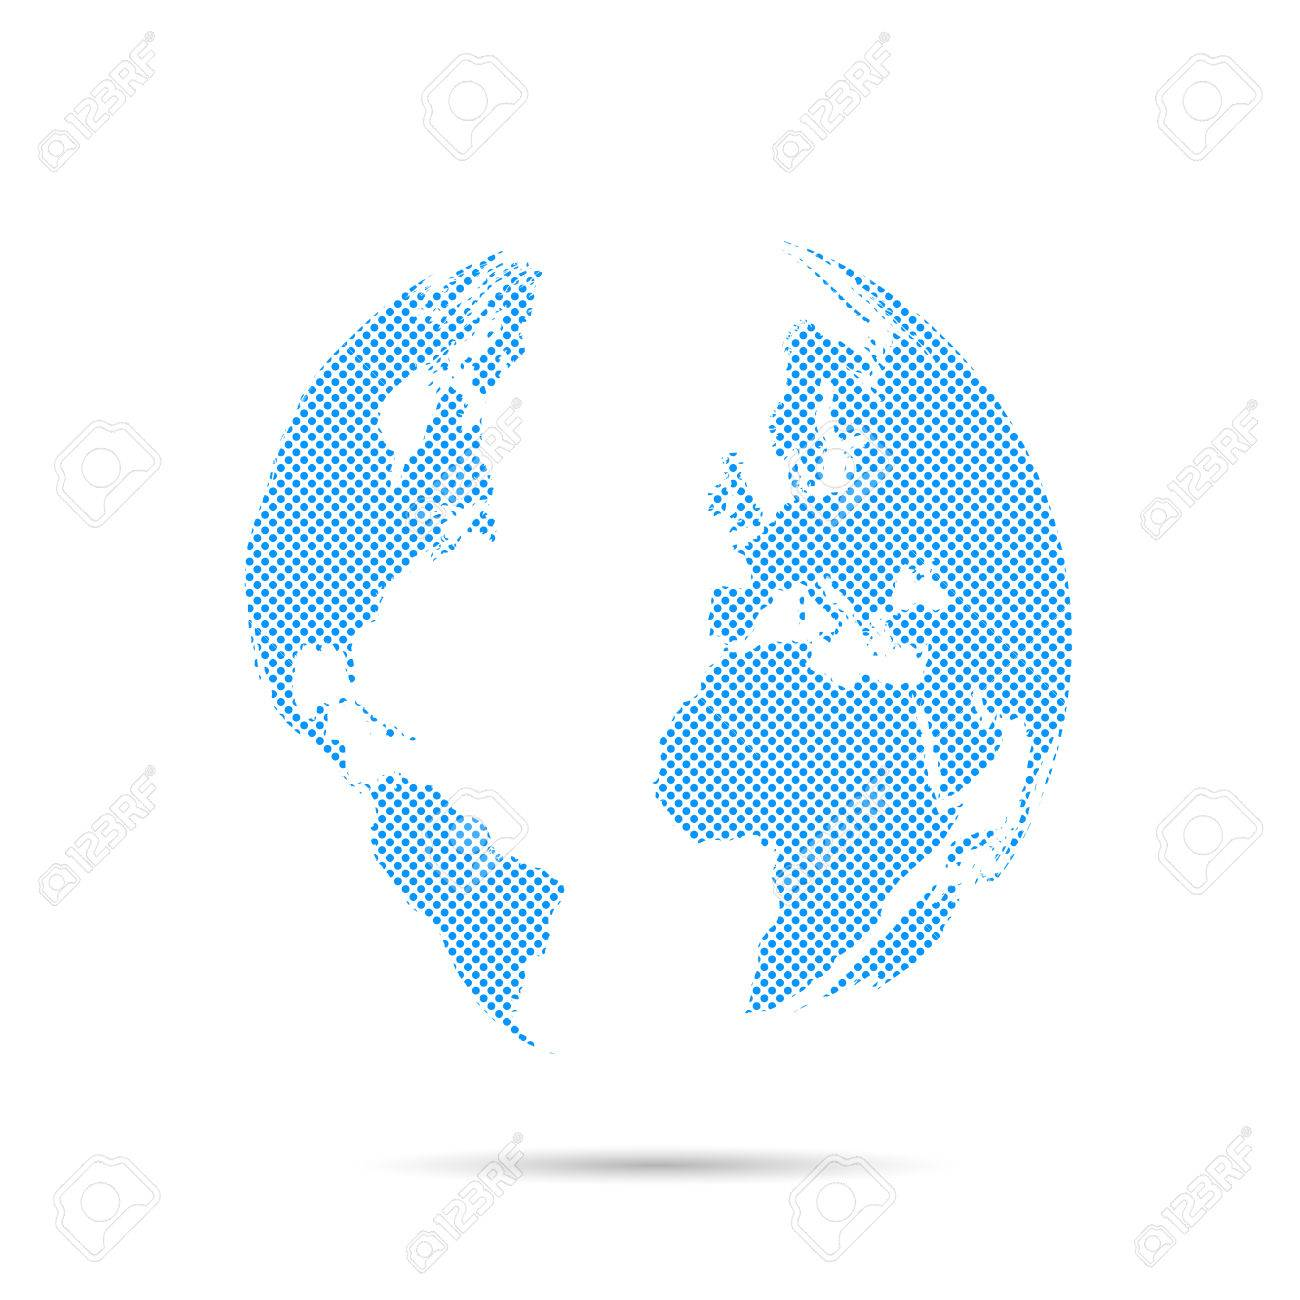 Illustration of an abstract world map design royalty free cliparts illustration of an abstract world map design stock vector 29340732 gumiabroncs Image collections